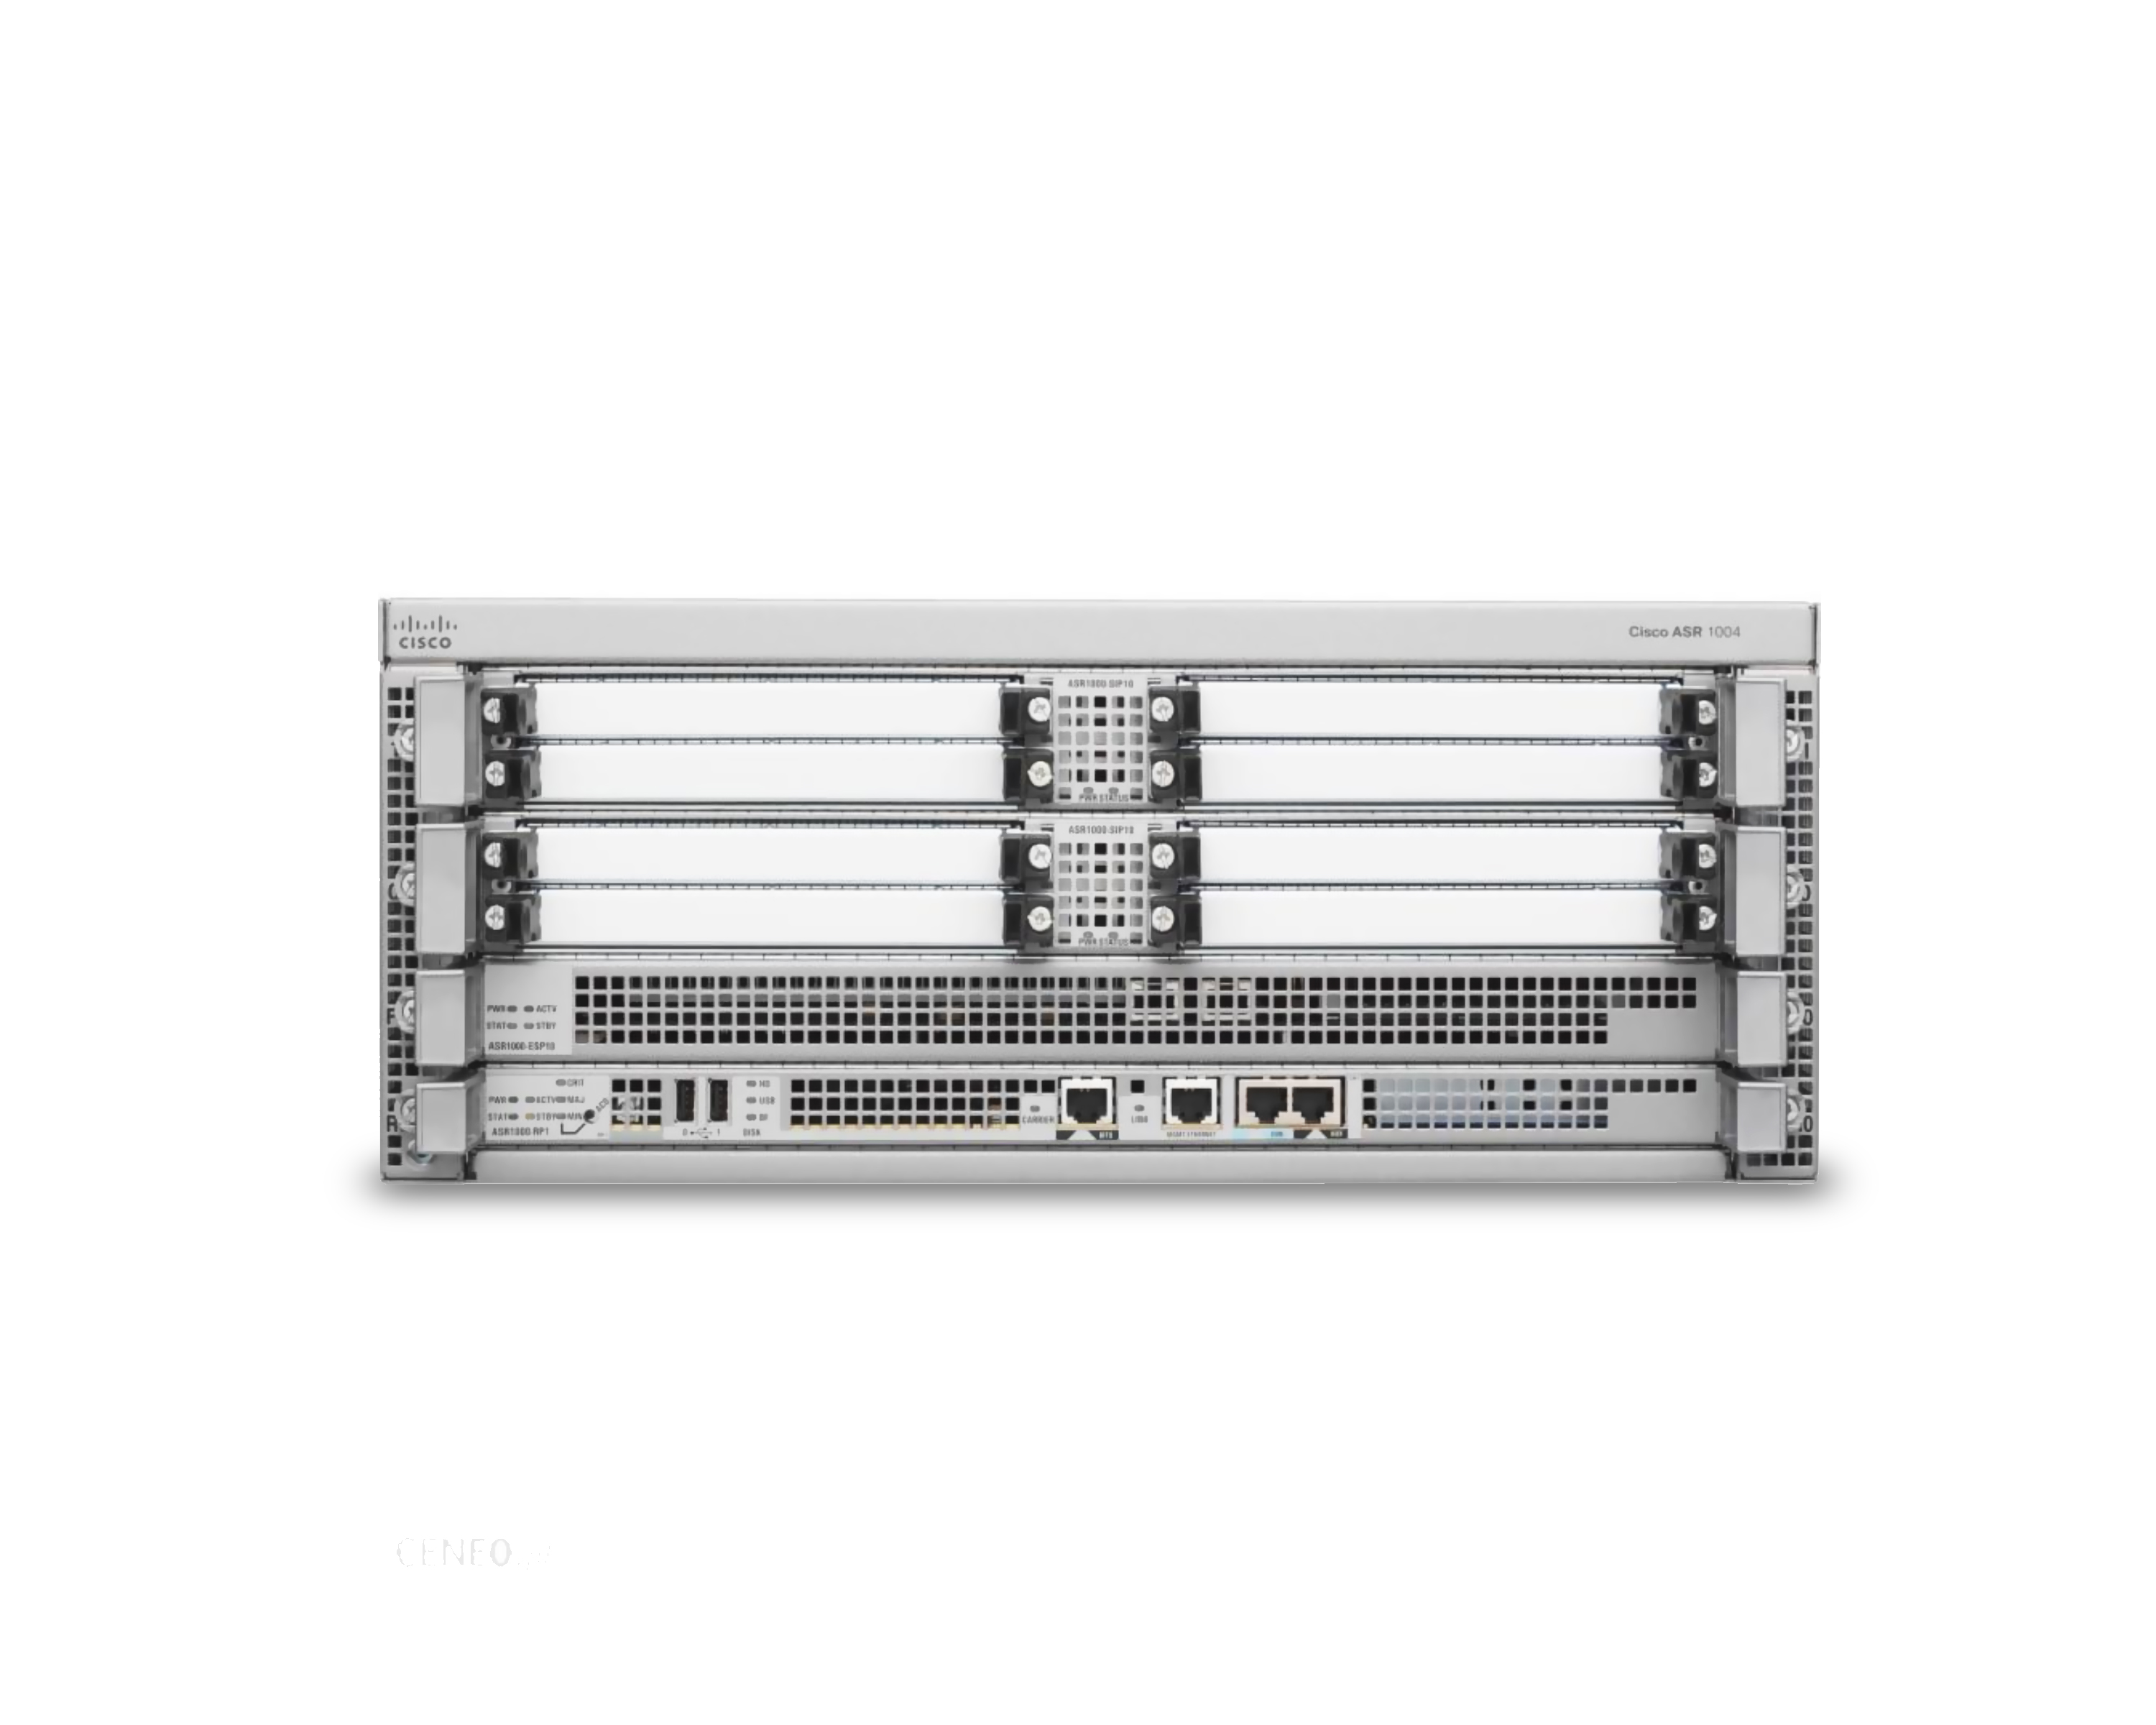 Cisco ASR1004 – CiscoASR1004 Chassis Included AC P/S